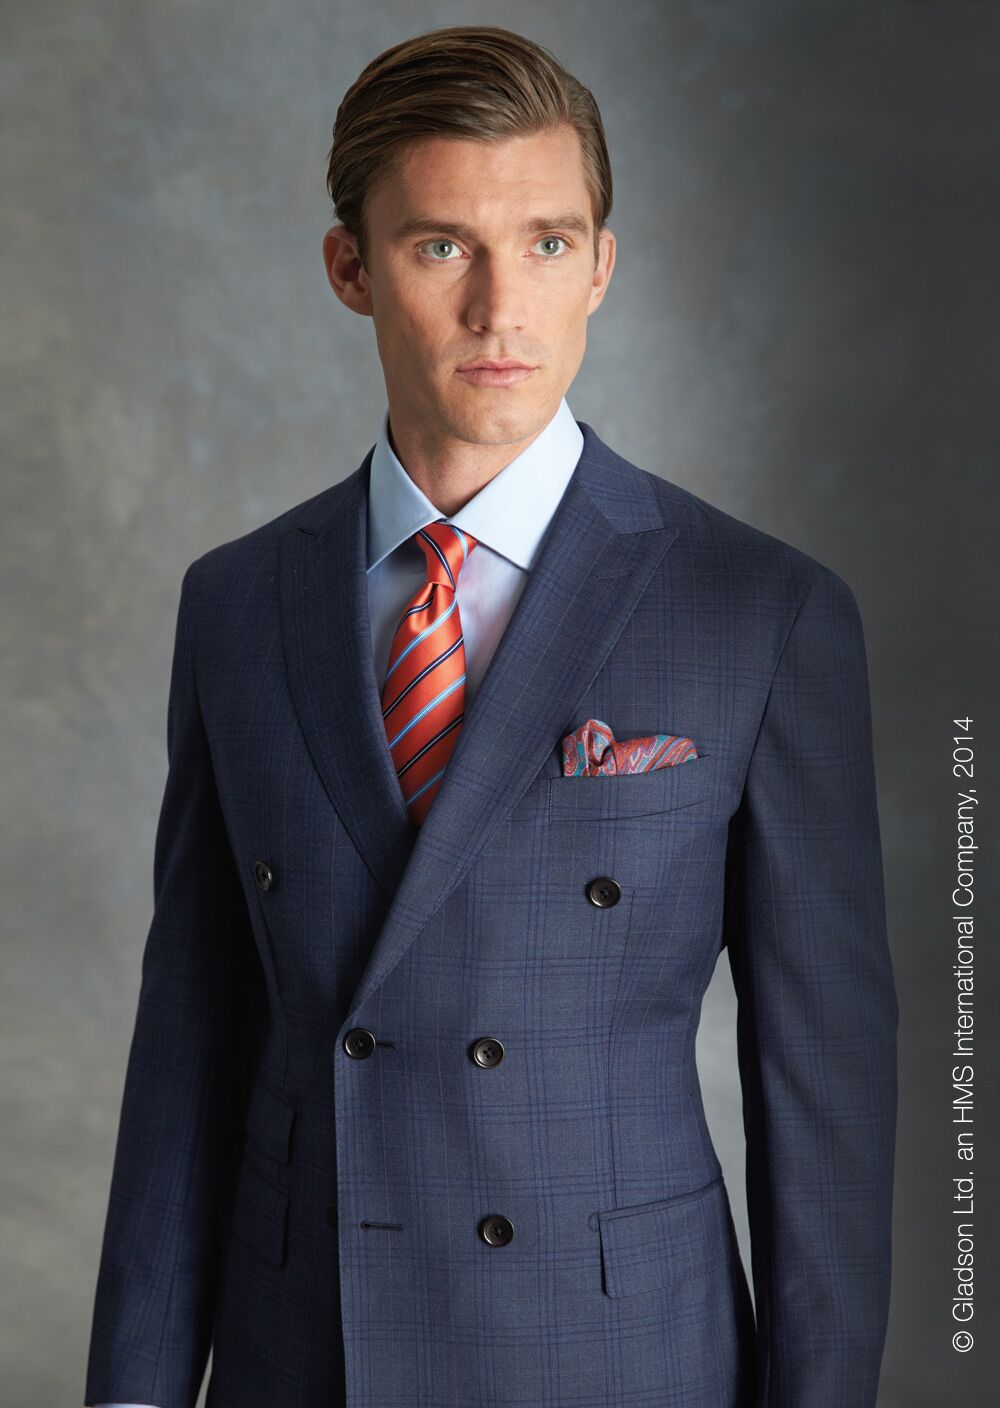 London Street Blue Suit.jpg